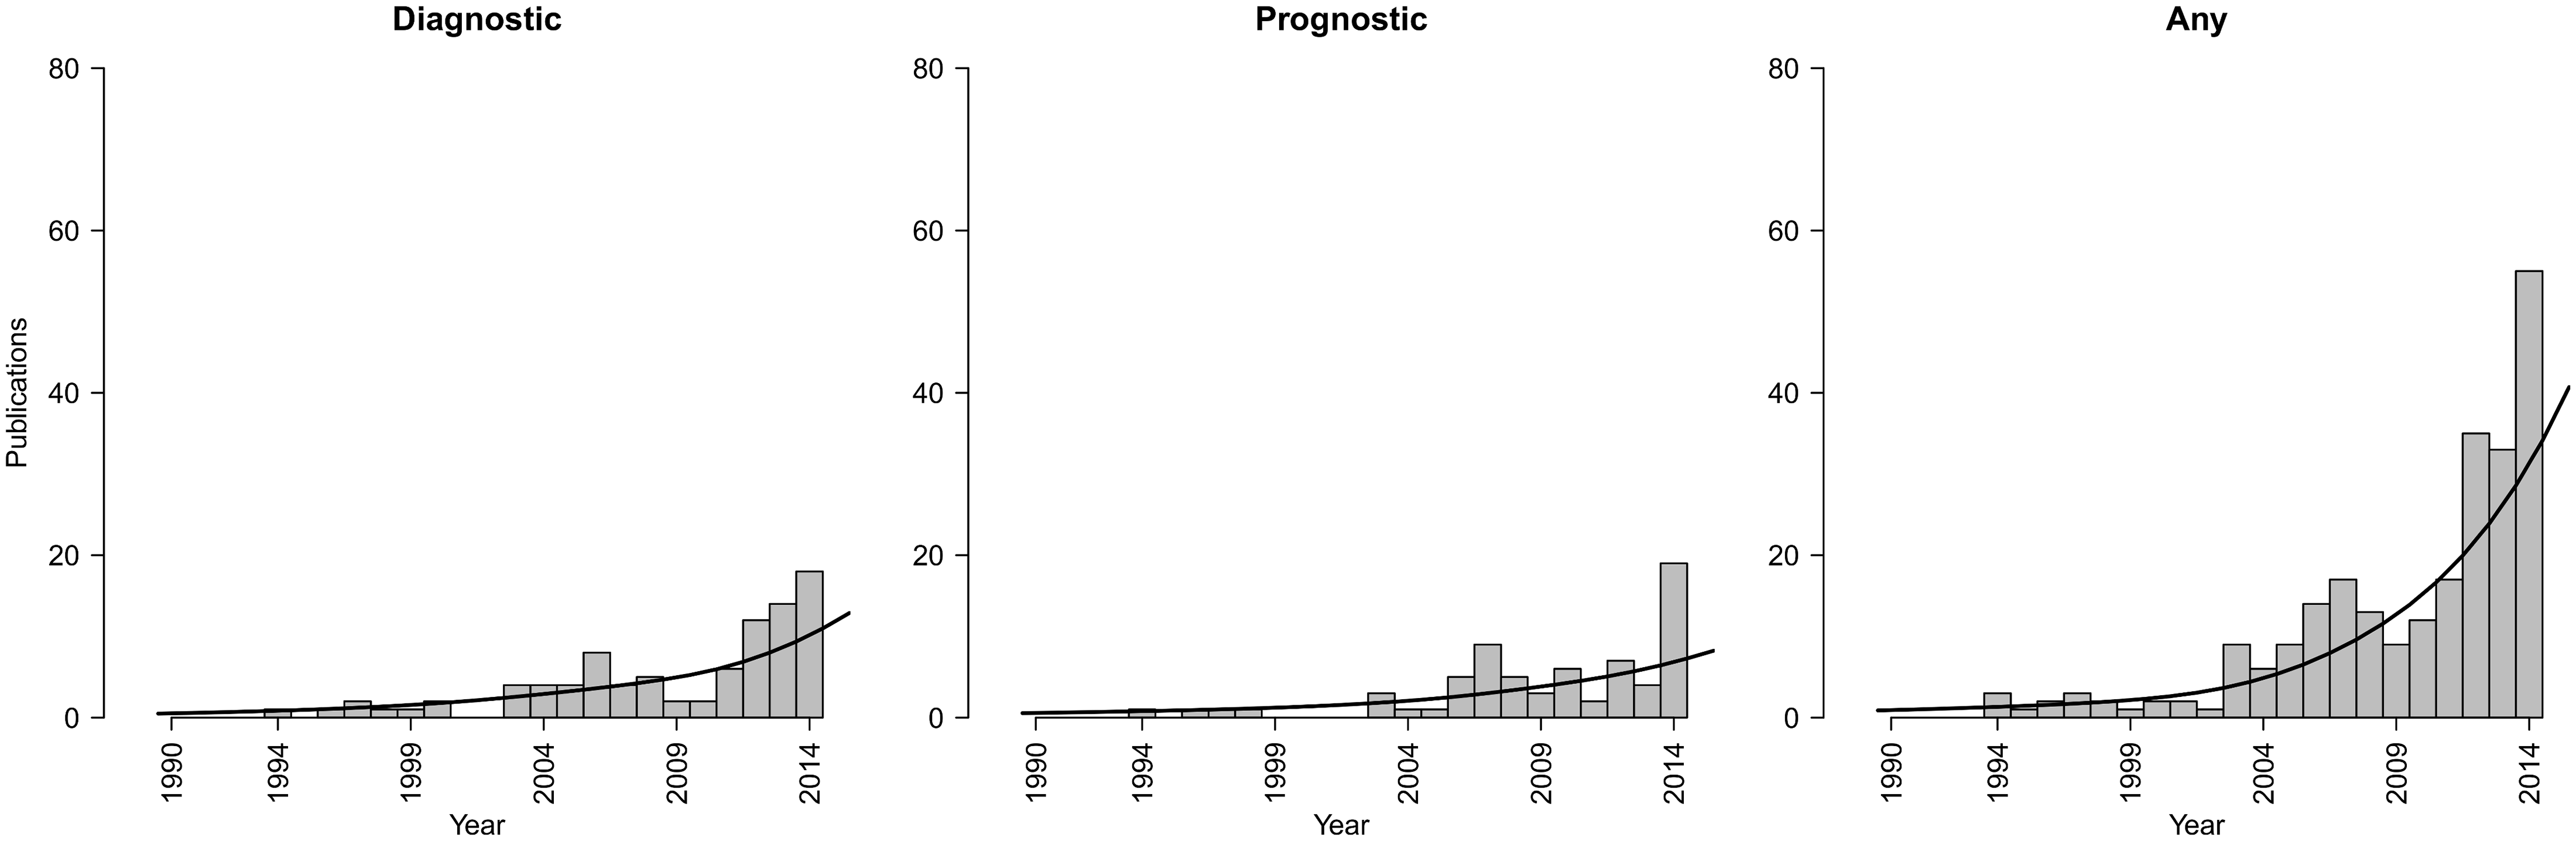 Trends in publications of IPD-MA studies focusing on the development and/or validation of diagnostic or prognostic prediction models.